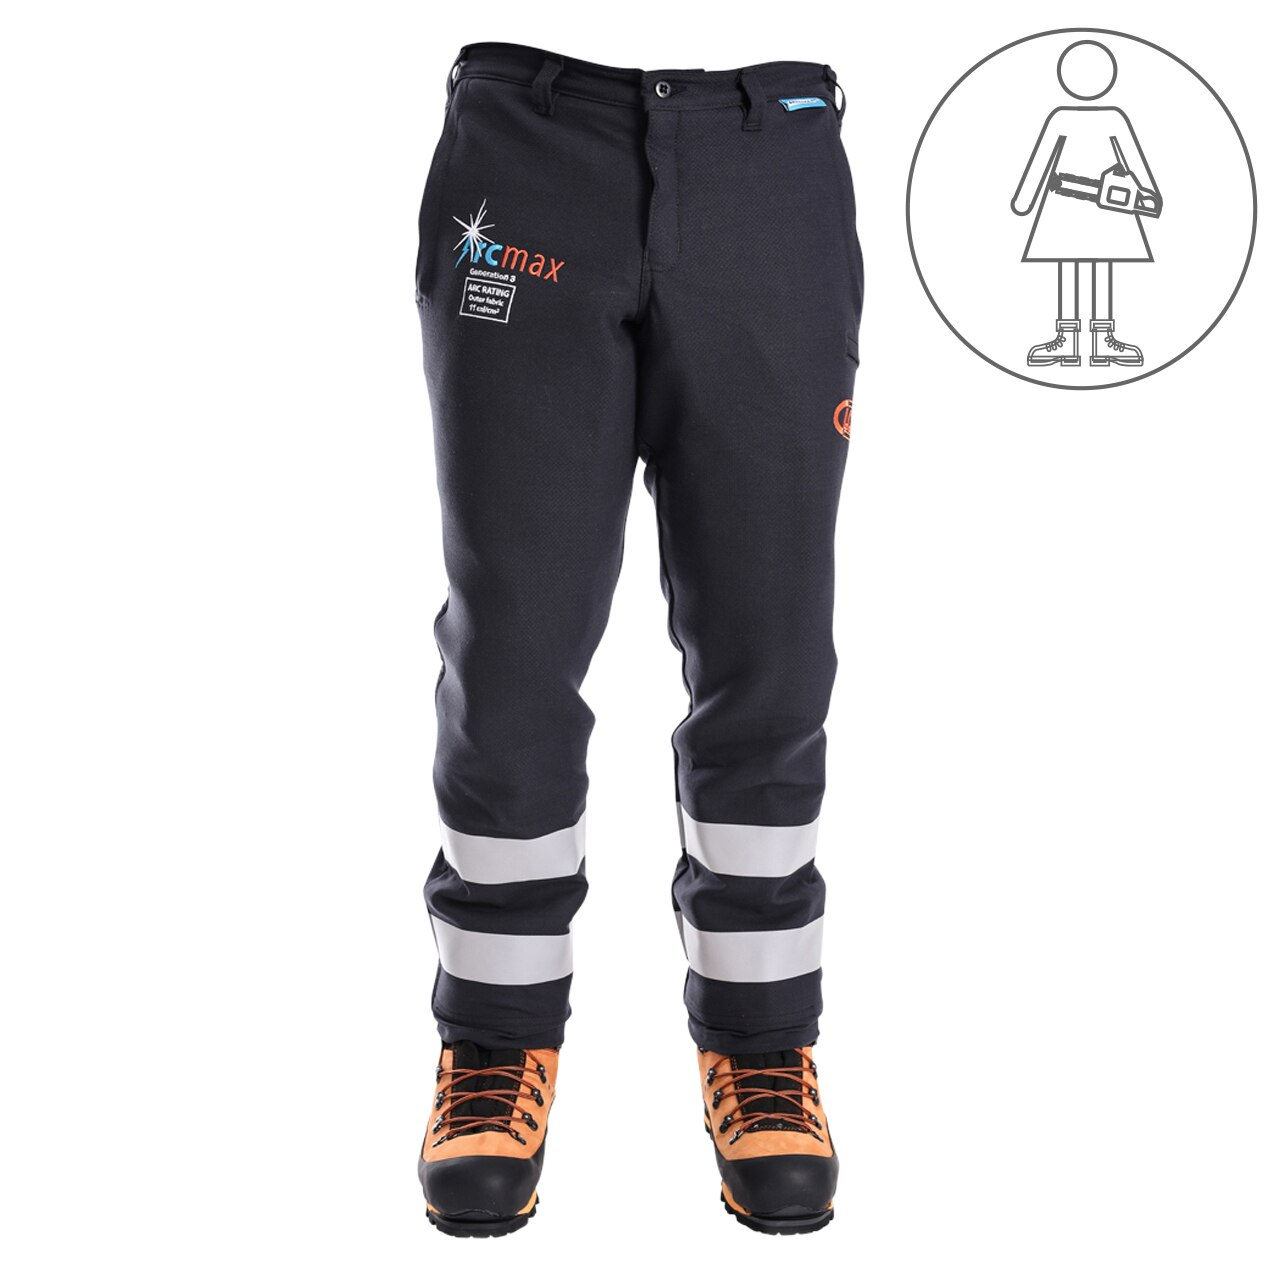 Clogger Arcmax Gen3 Arc Rated Fire Resistant Women's Chainsaw Pants (Now With Stretch)